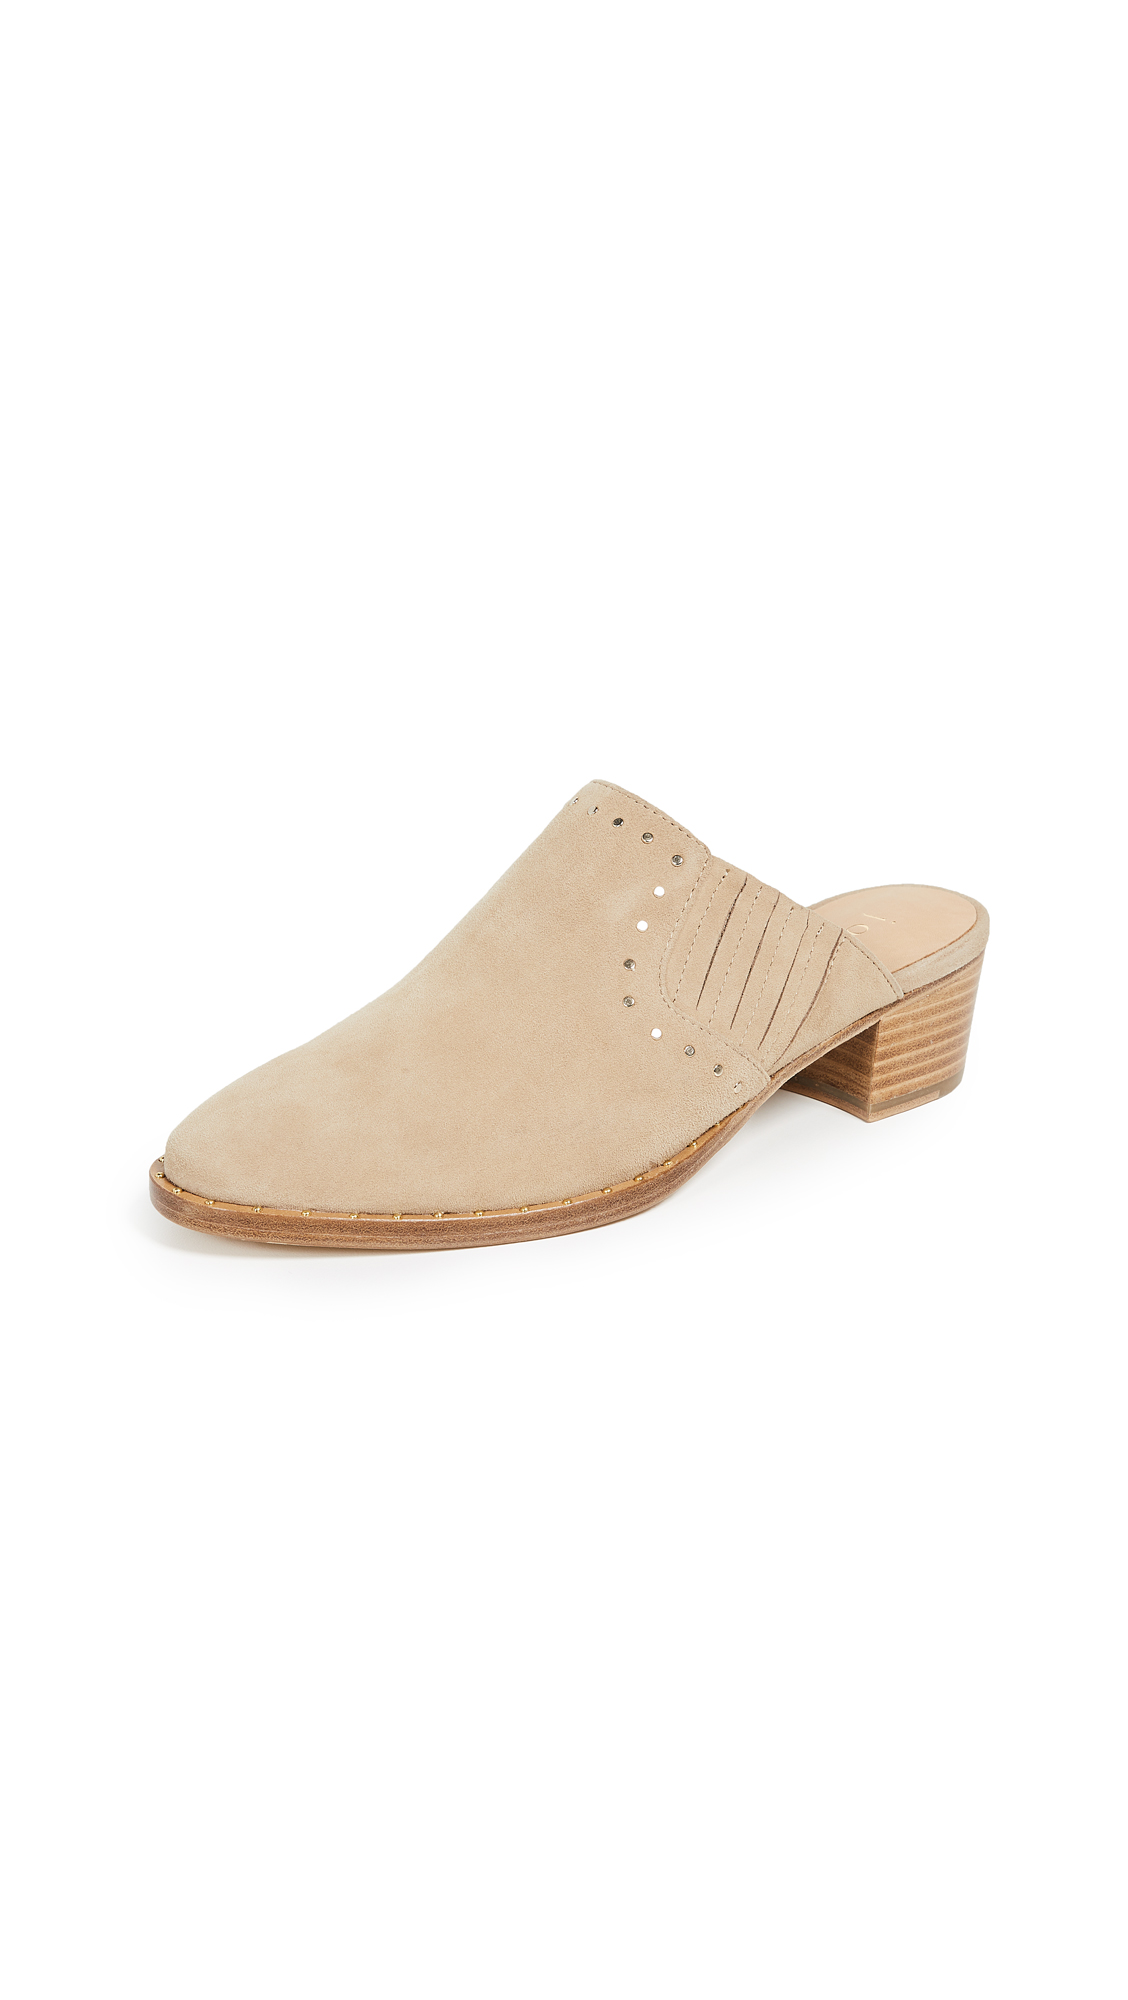 Joie Fayla Mules - Sand